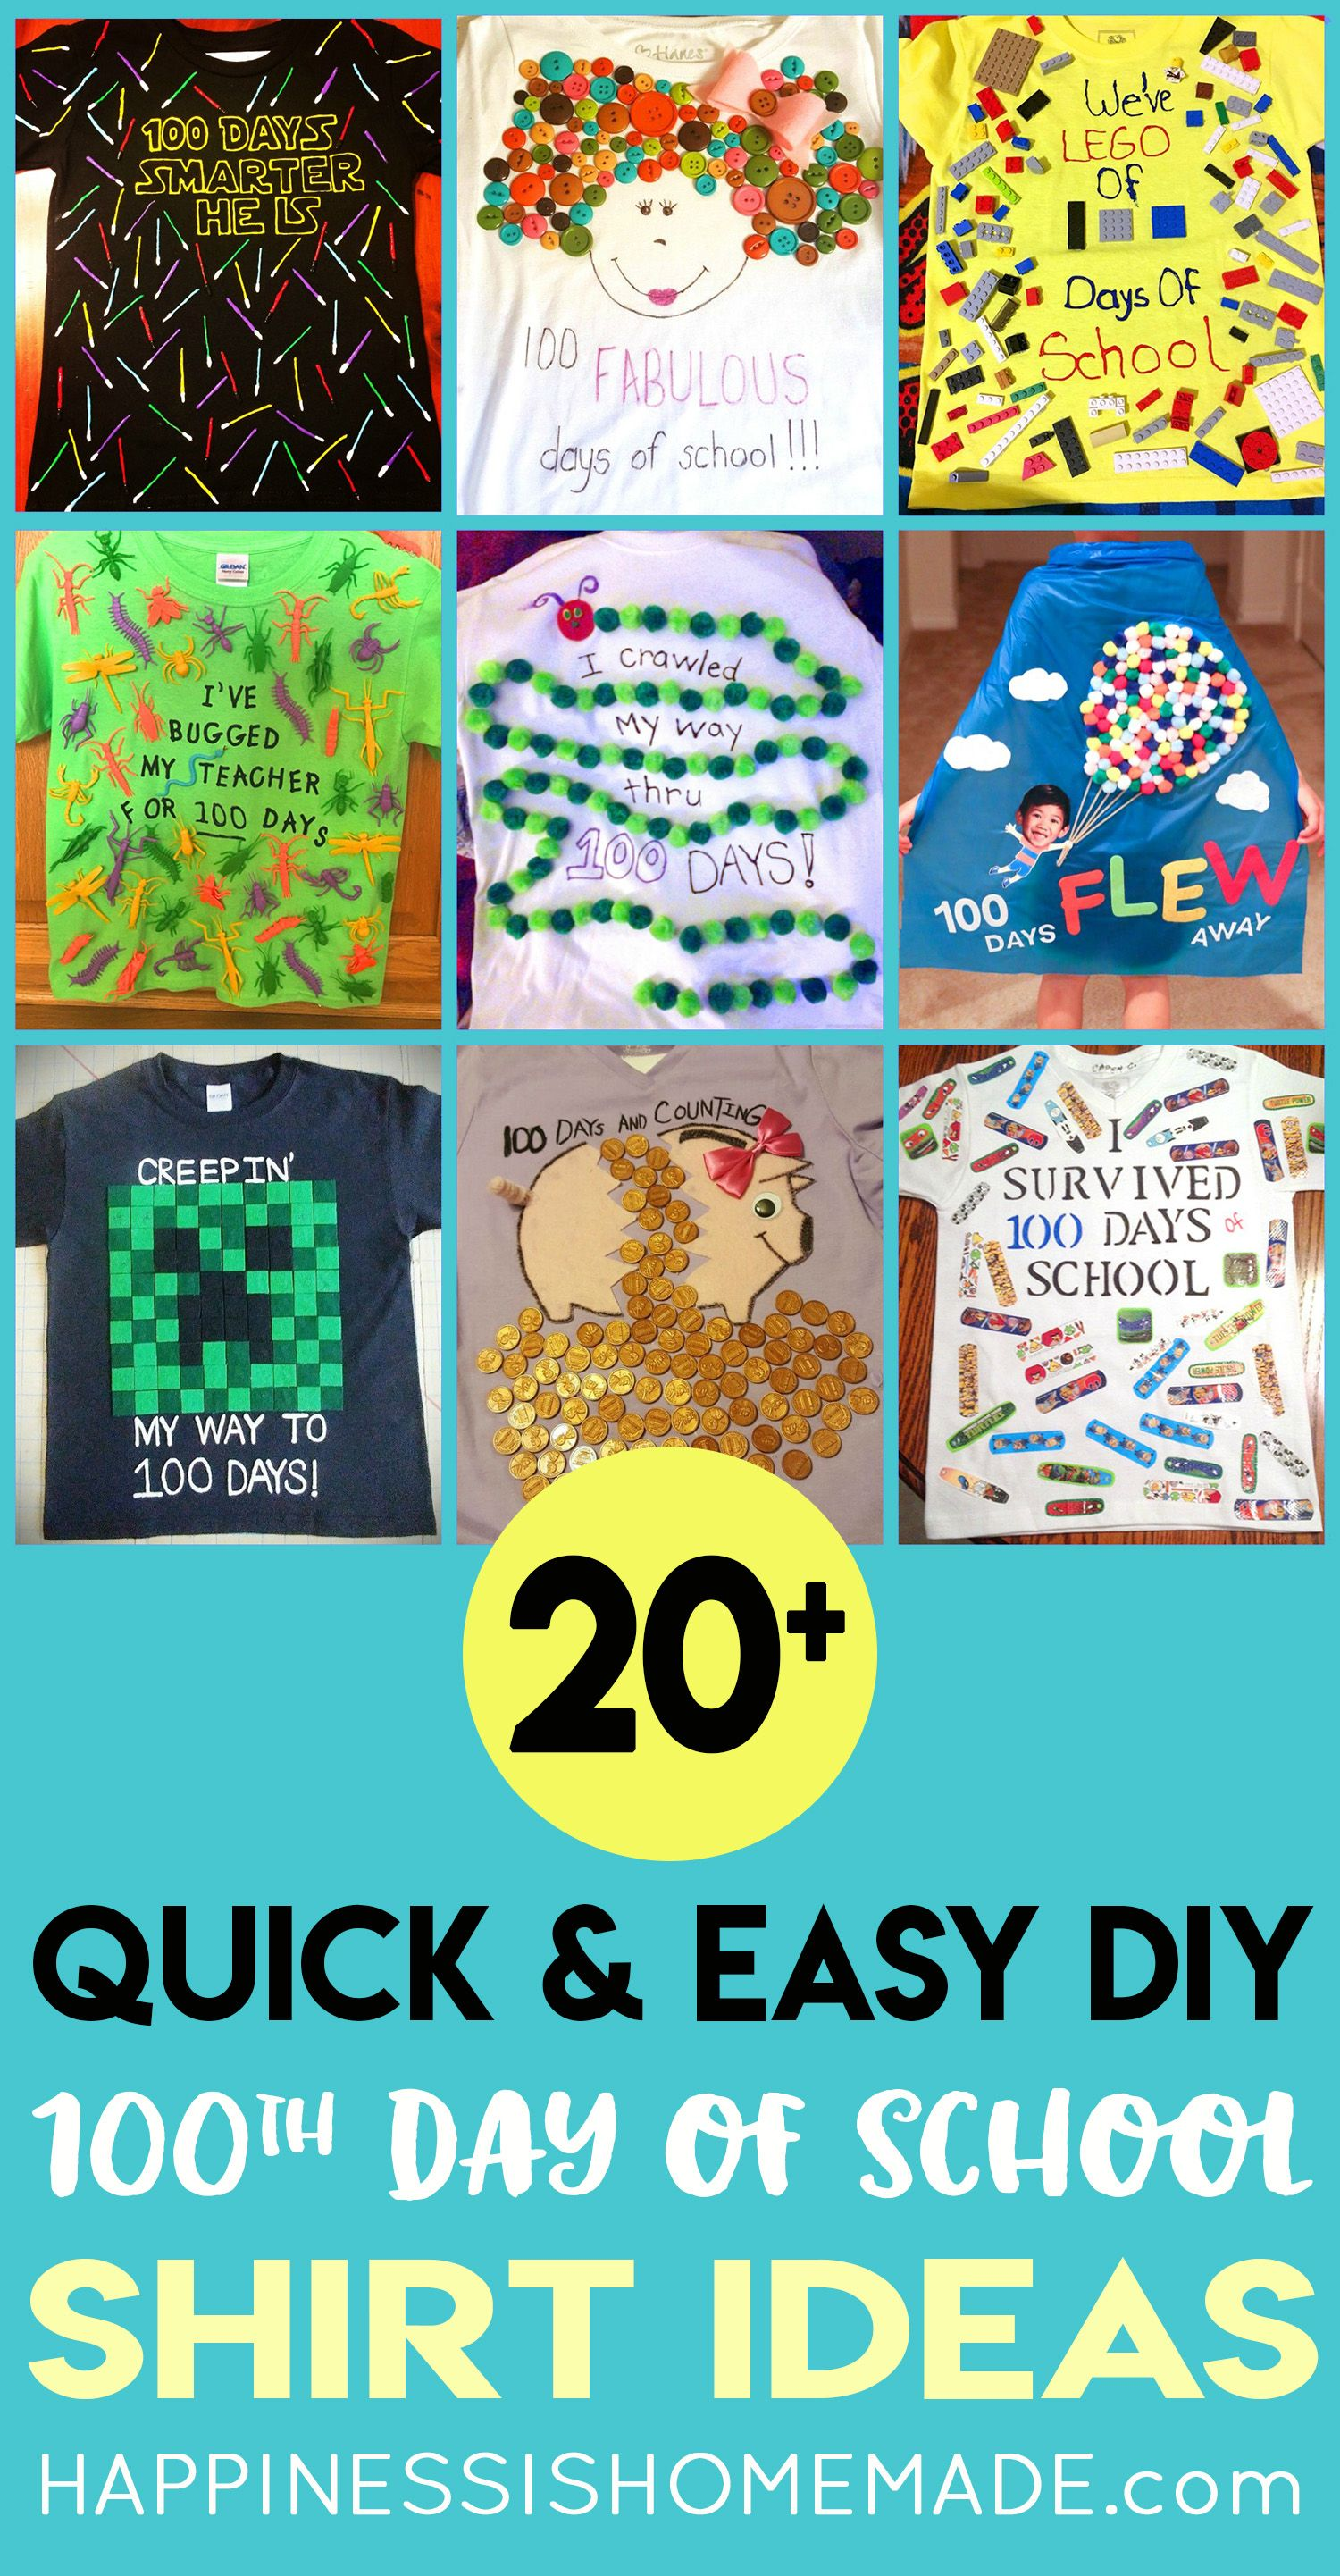 Easy 100 Days of School Shirt Ideas - Happiness is Homemade